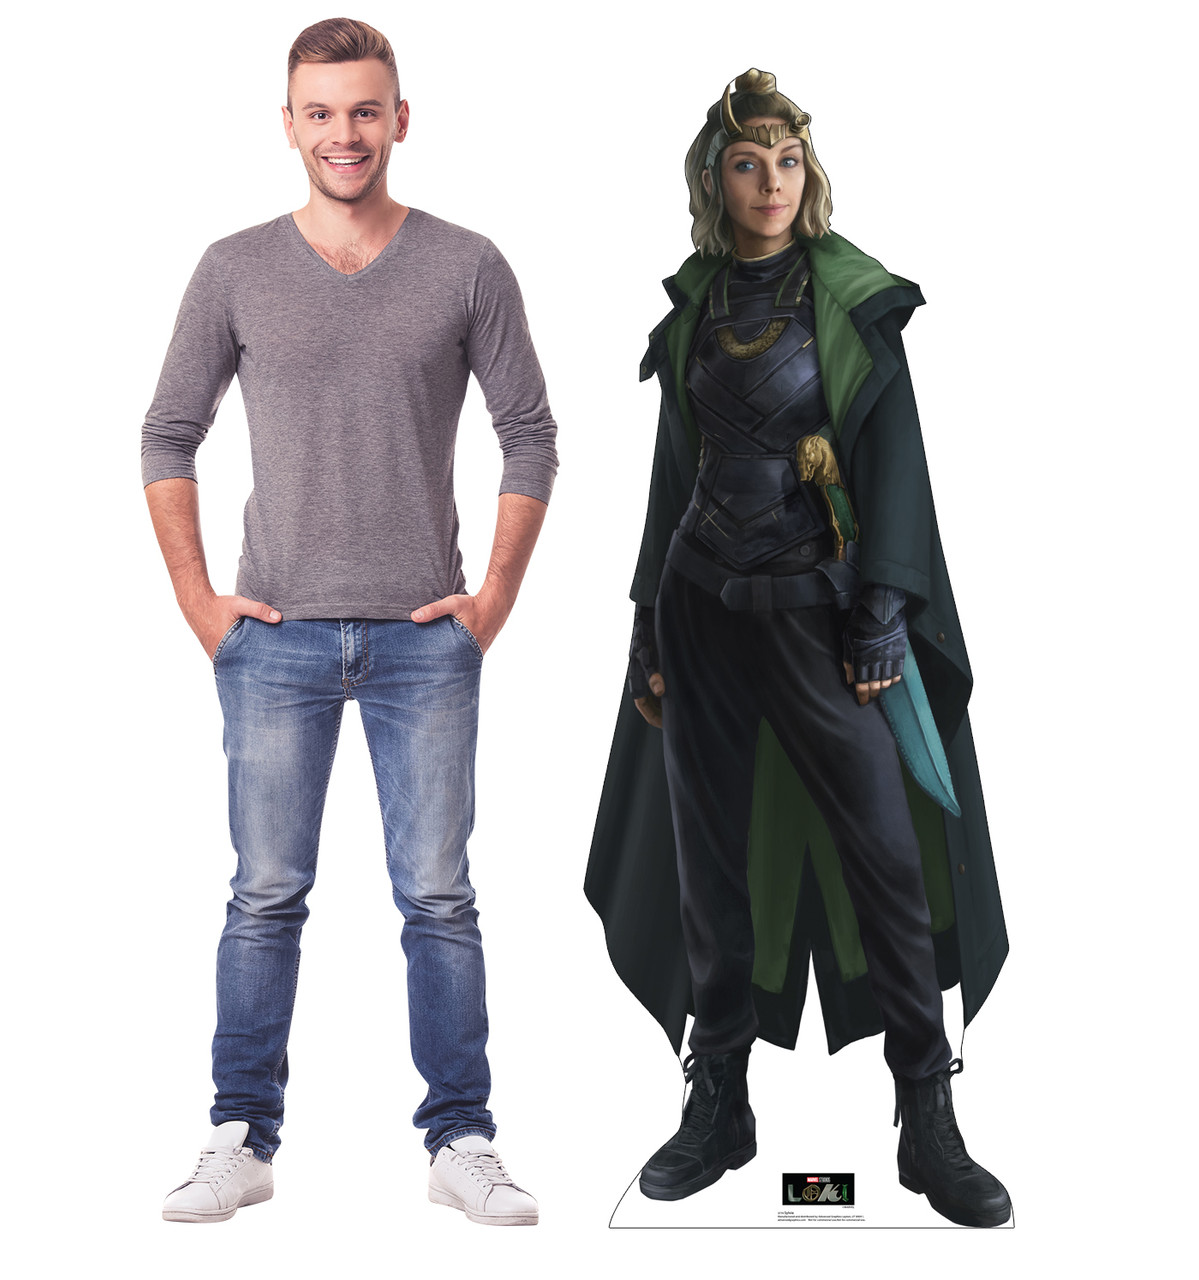 Life-size cardboard standee of Sylvie from Marvel/Disney+ series Loki with model.